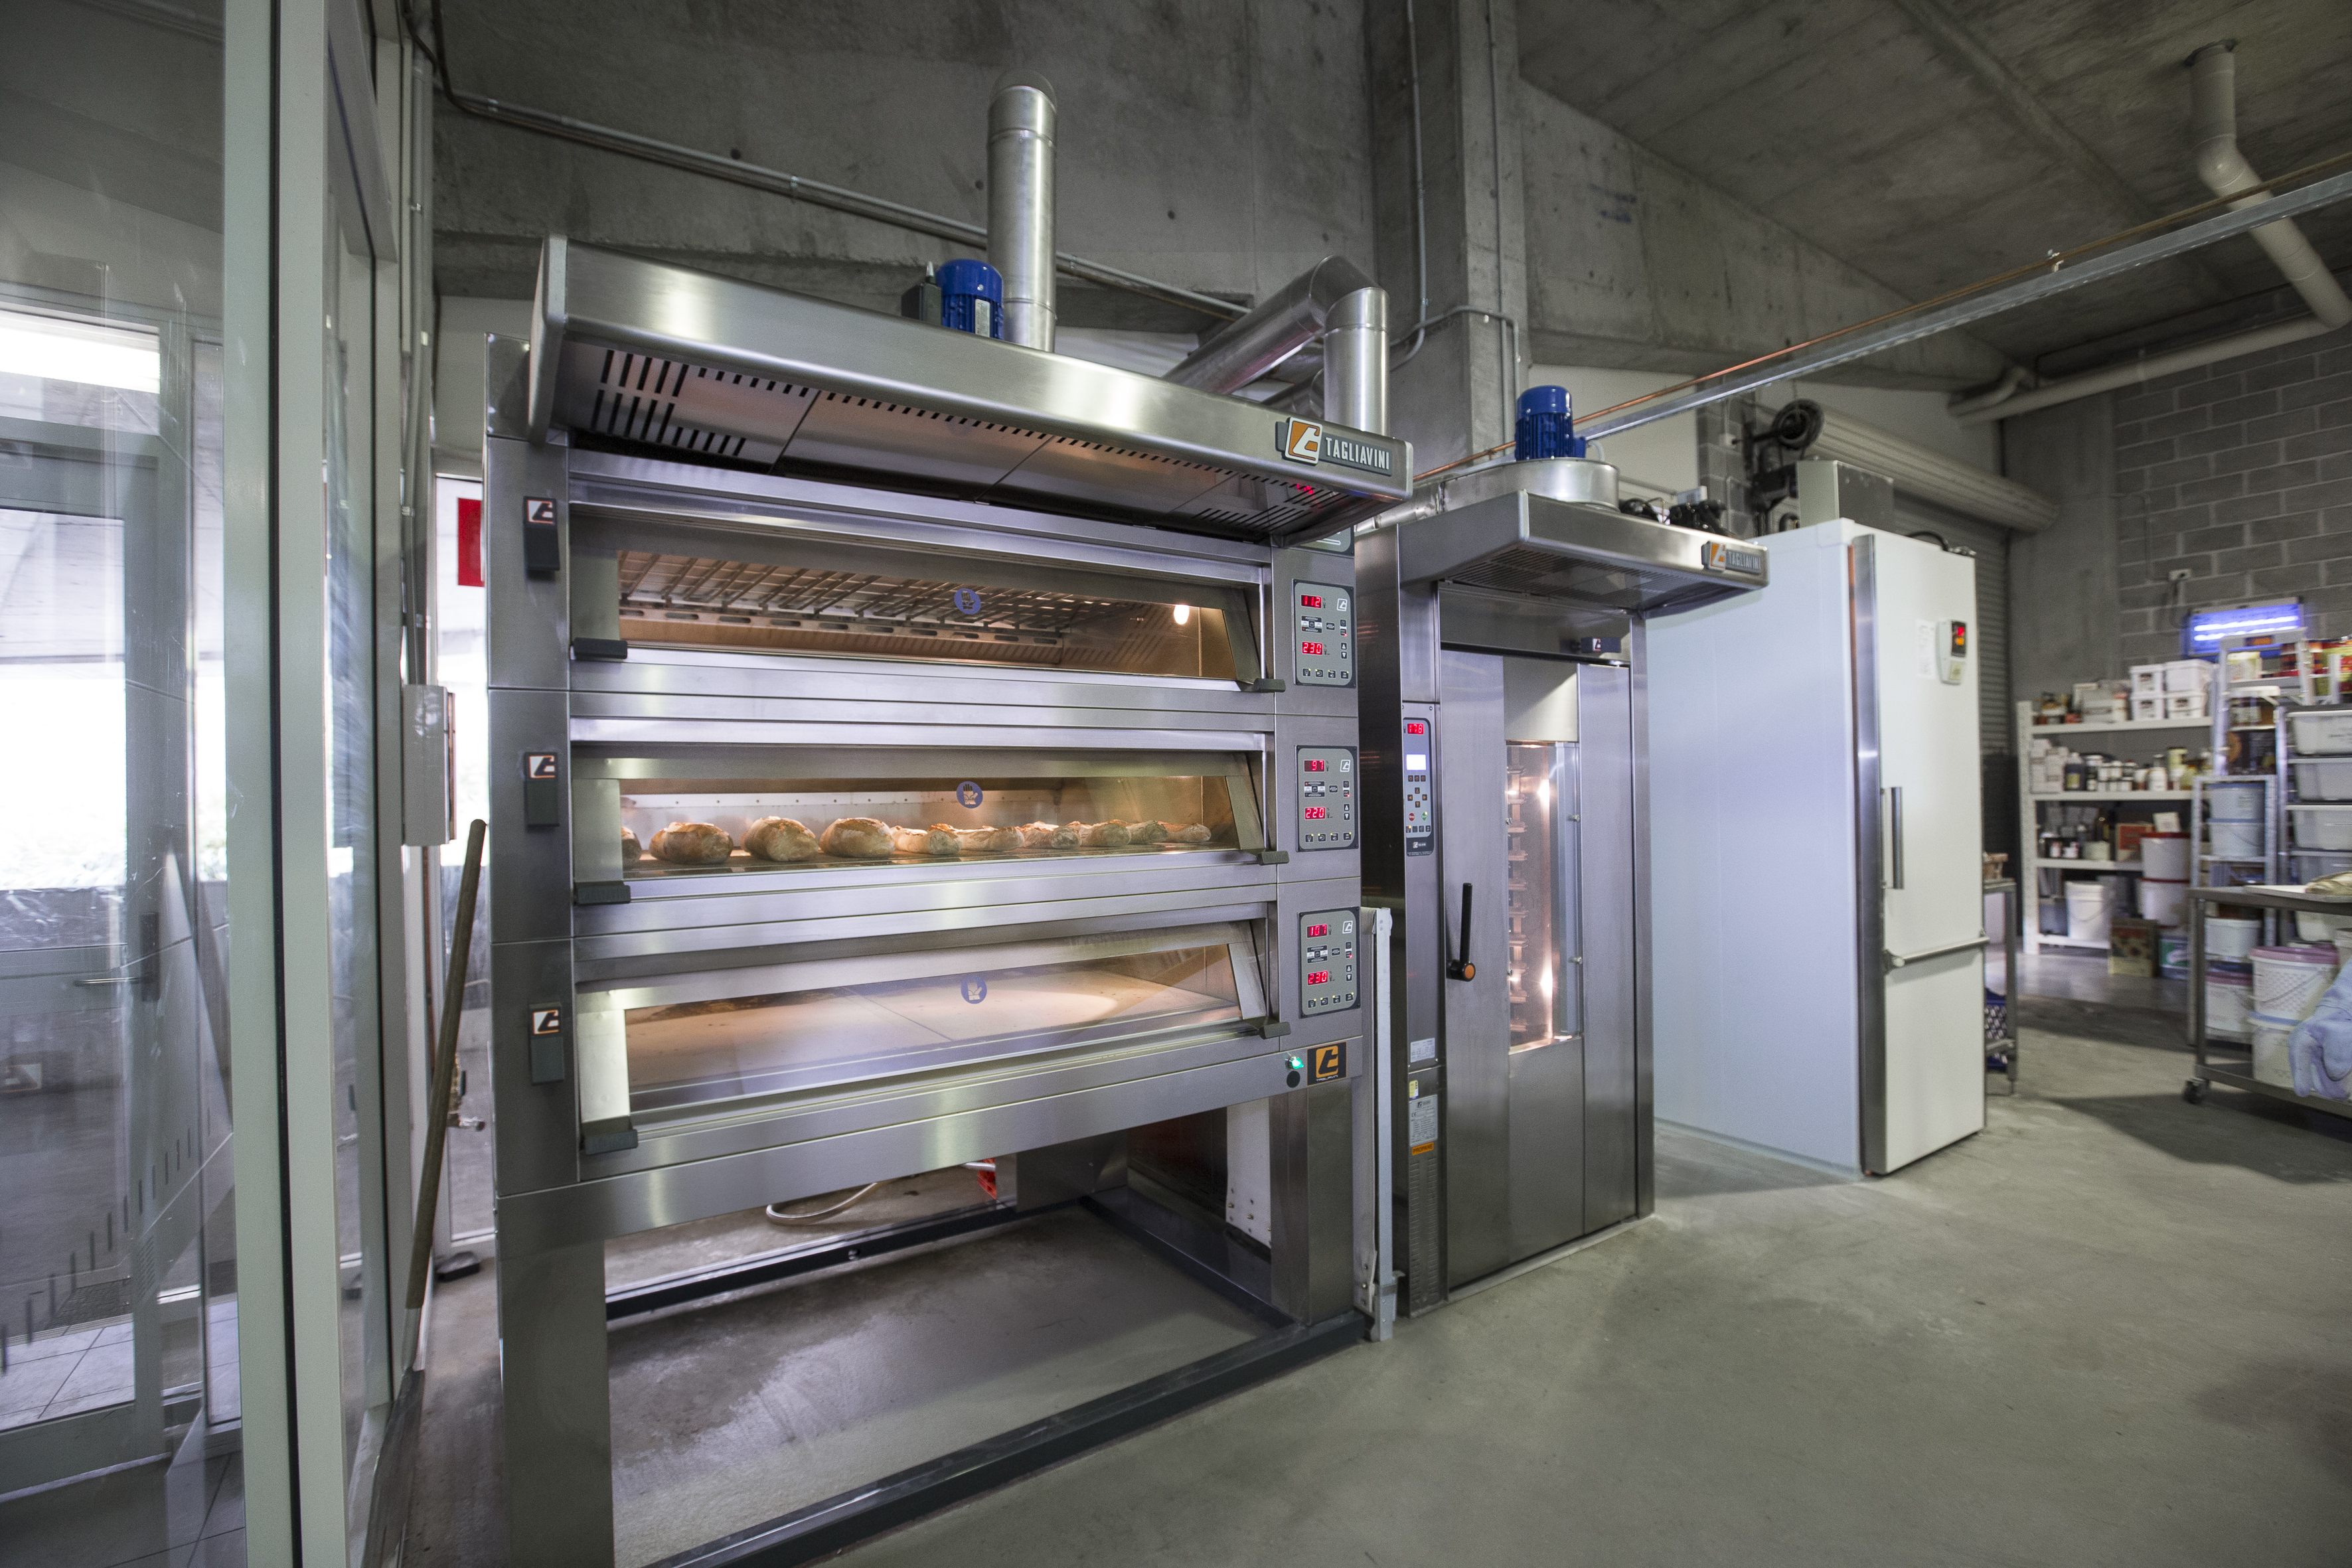 From humble beginnings with a small commercial oven for their desserts they now enjoy a variety of first-class kitchen equipment.